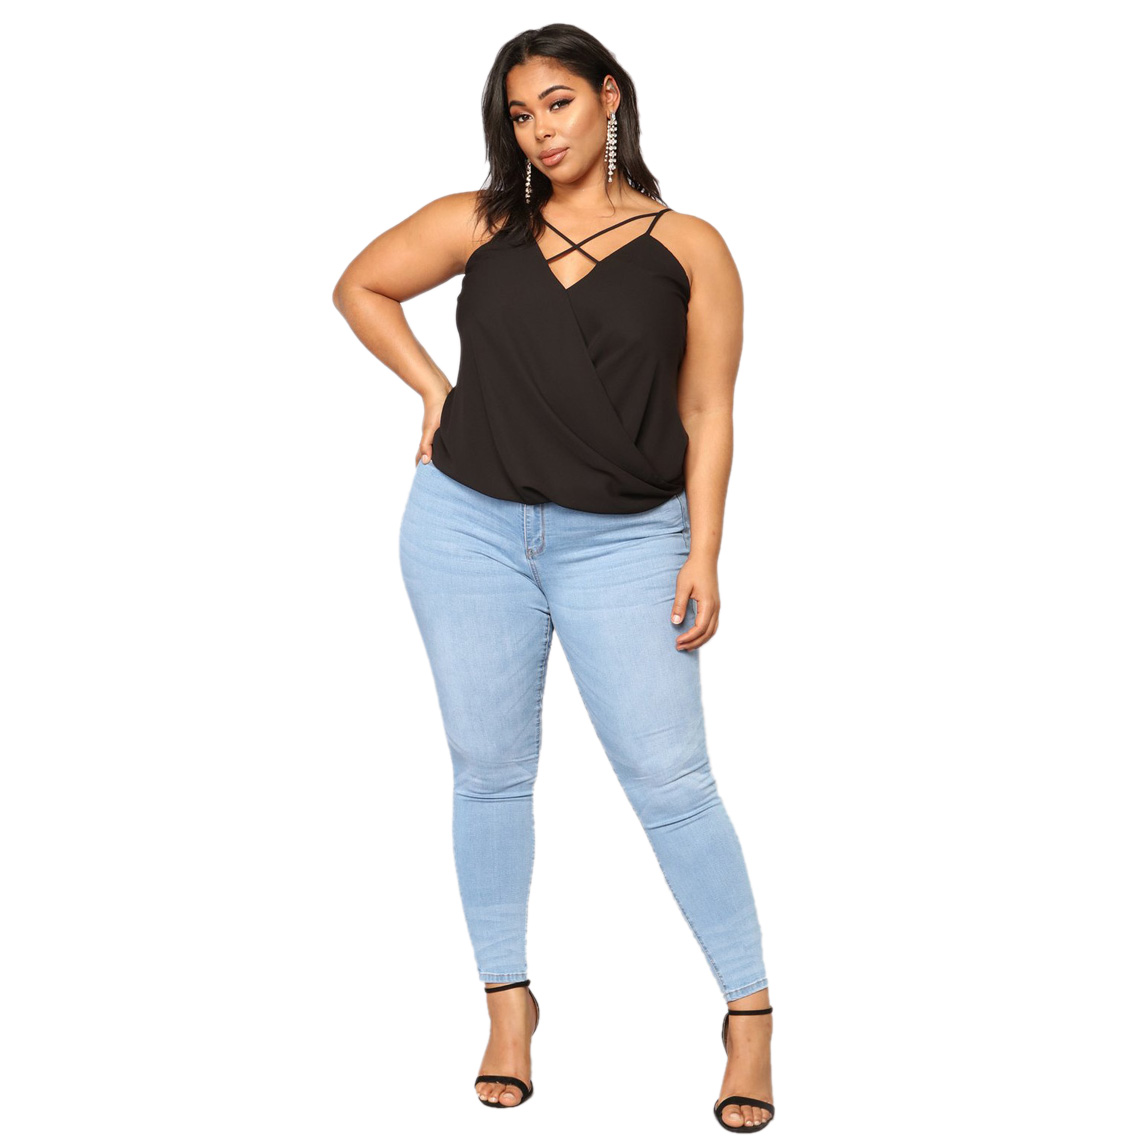 Women Fashion Plus Size Pockets Skinny Denim Pencil Pants Ladies Casual Stretch Washed   Jeans   Feet Pants Trousers Leggings